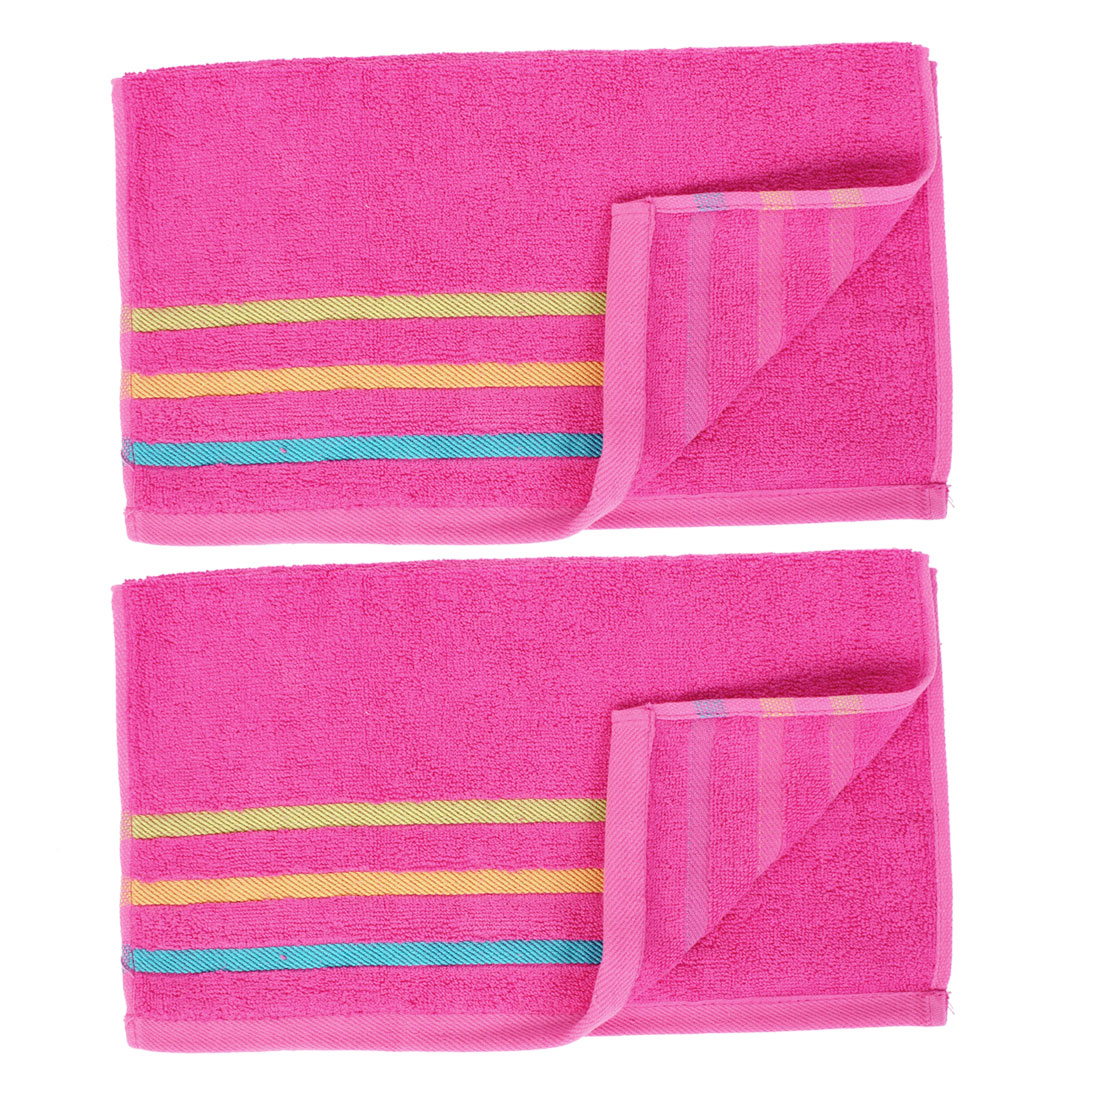 Travel Portable Cotton Blend Shower Hand Face Washing Terry Towel Washcloths 2pcs